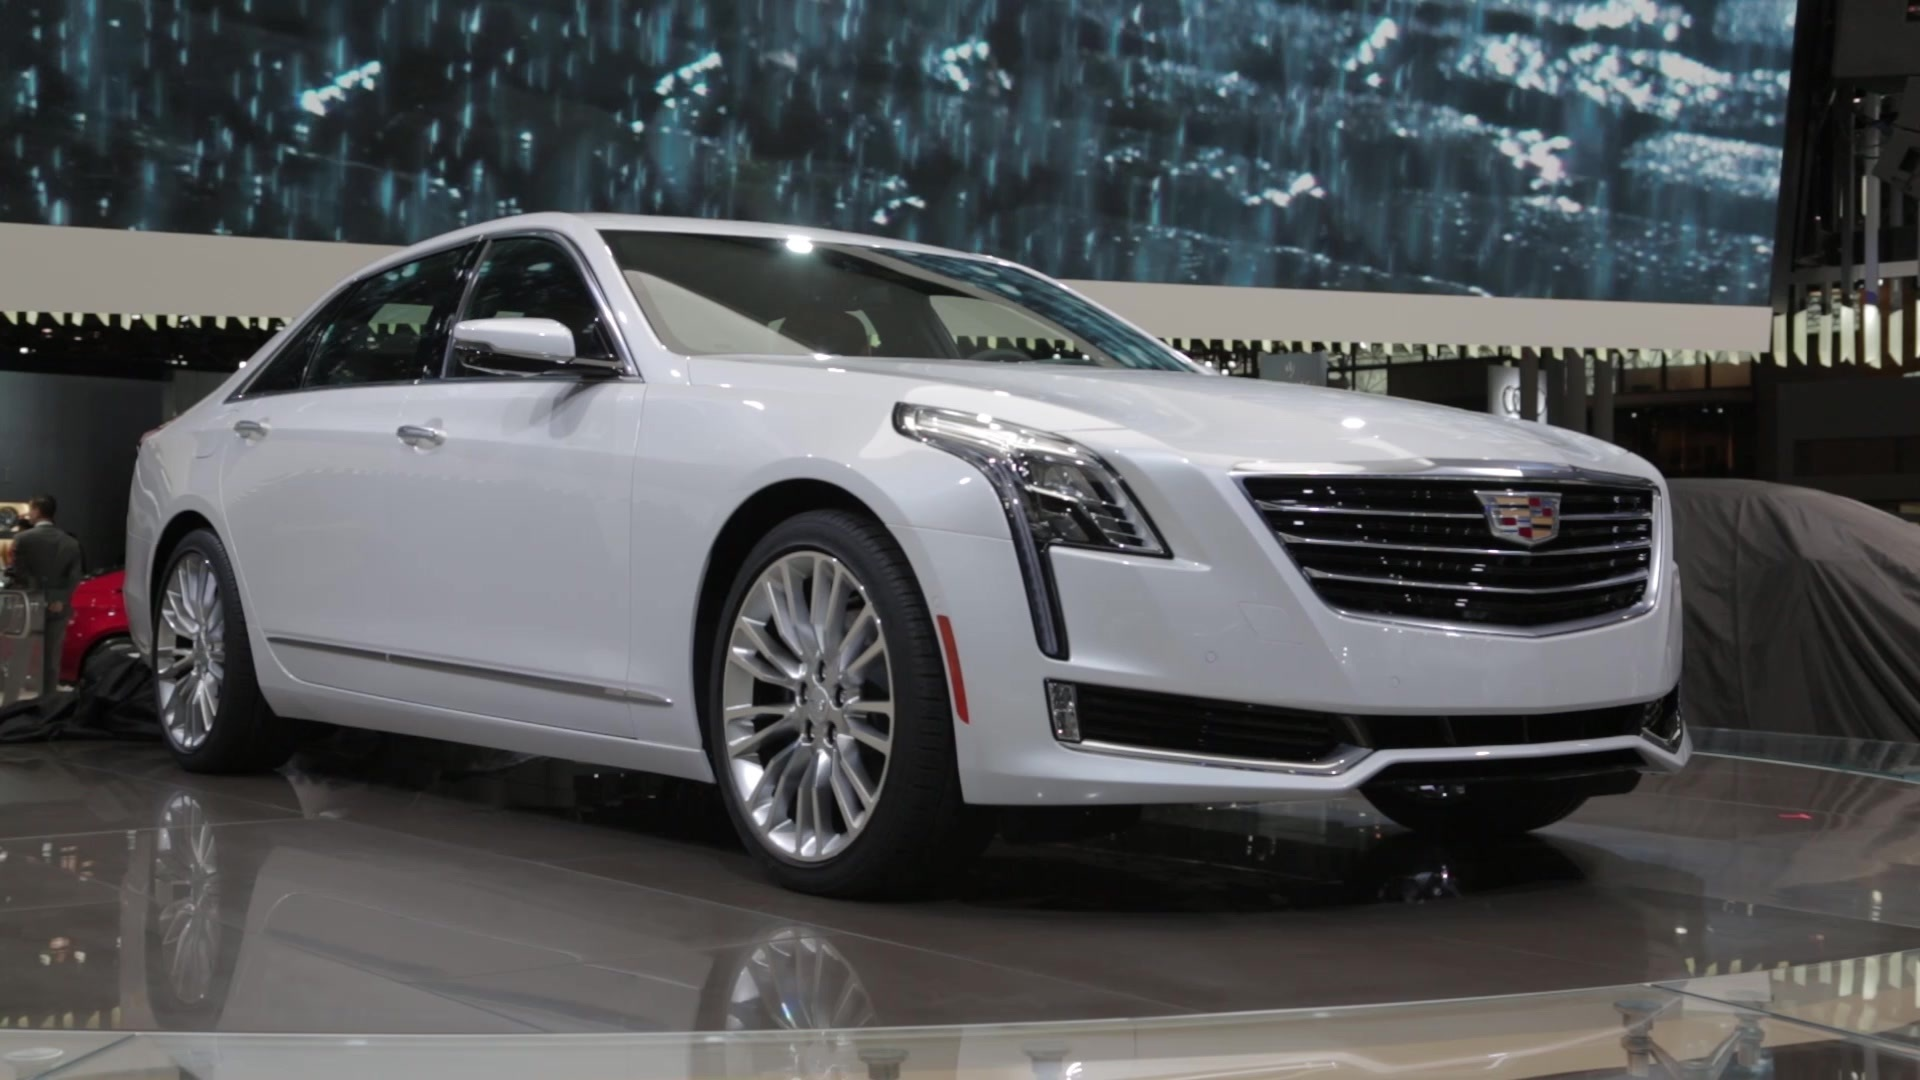 Cadillac CT6 2016 HD wallpapers free download